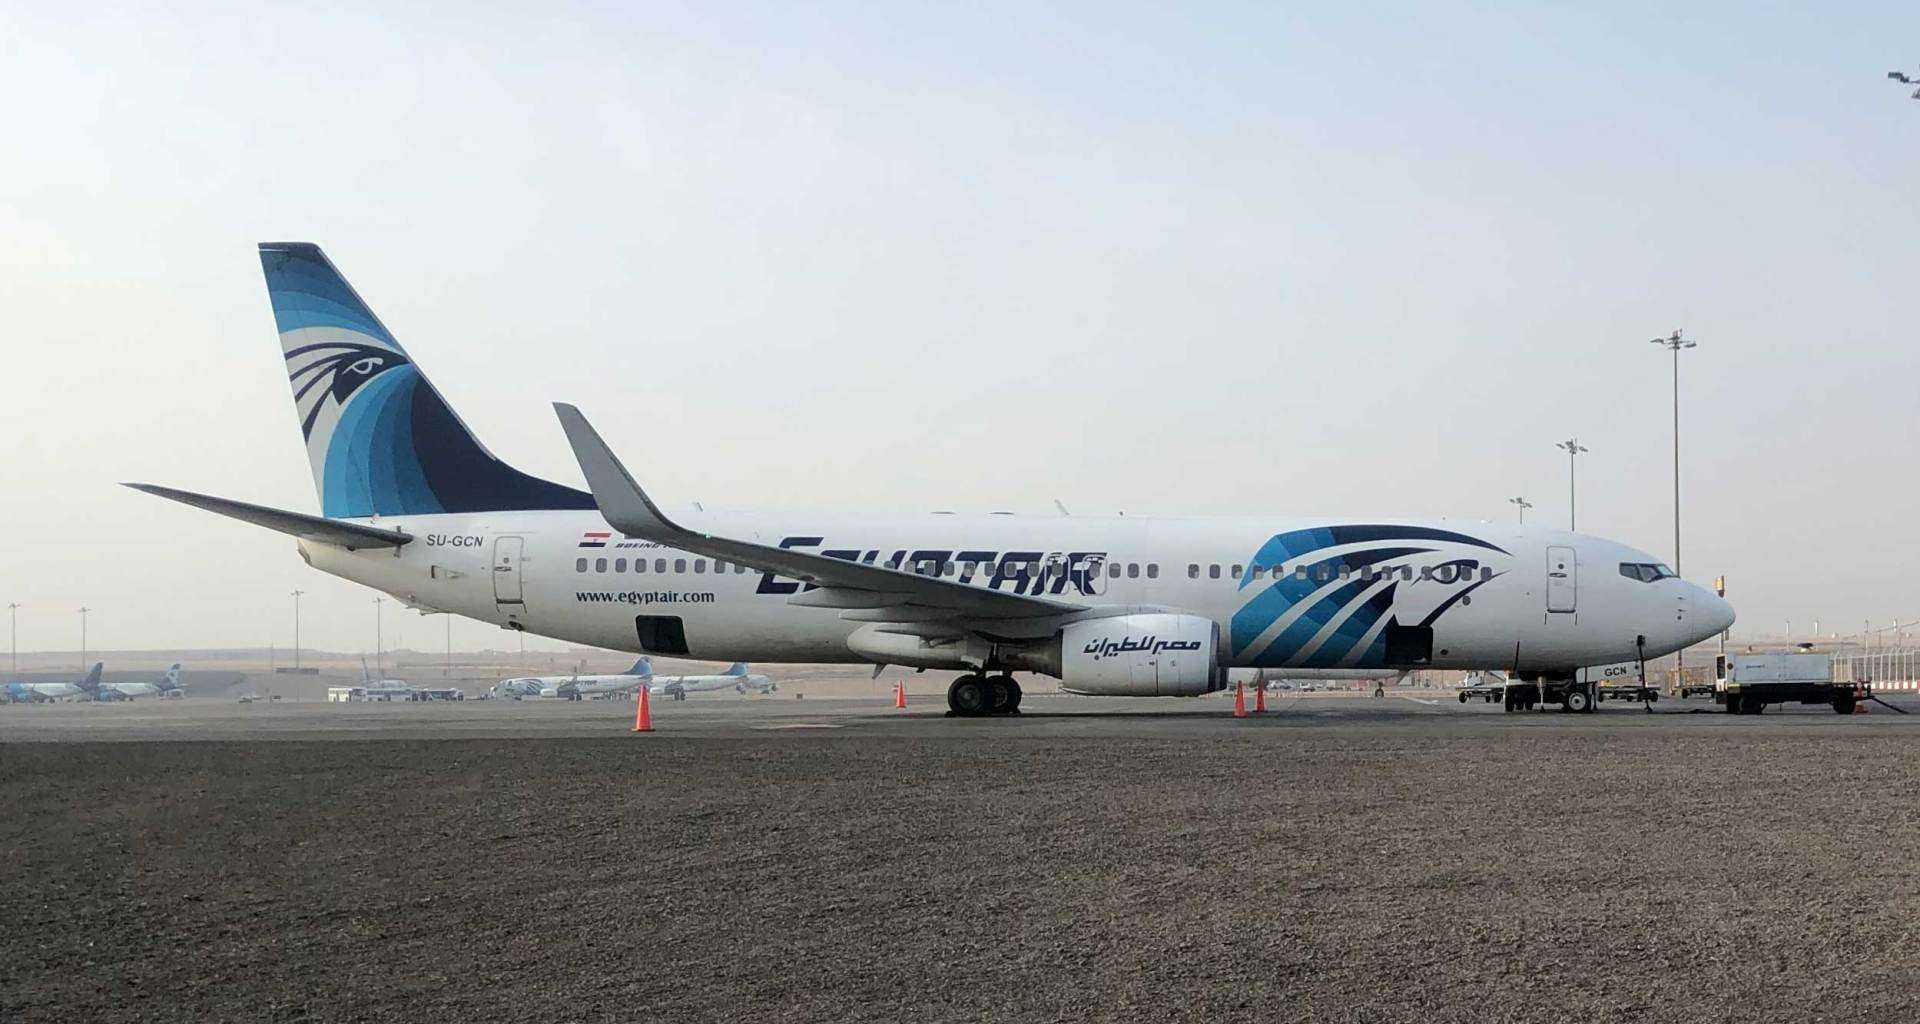 EgyptAir Boeing 737 parked at remote stand.